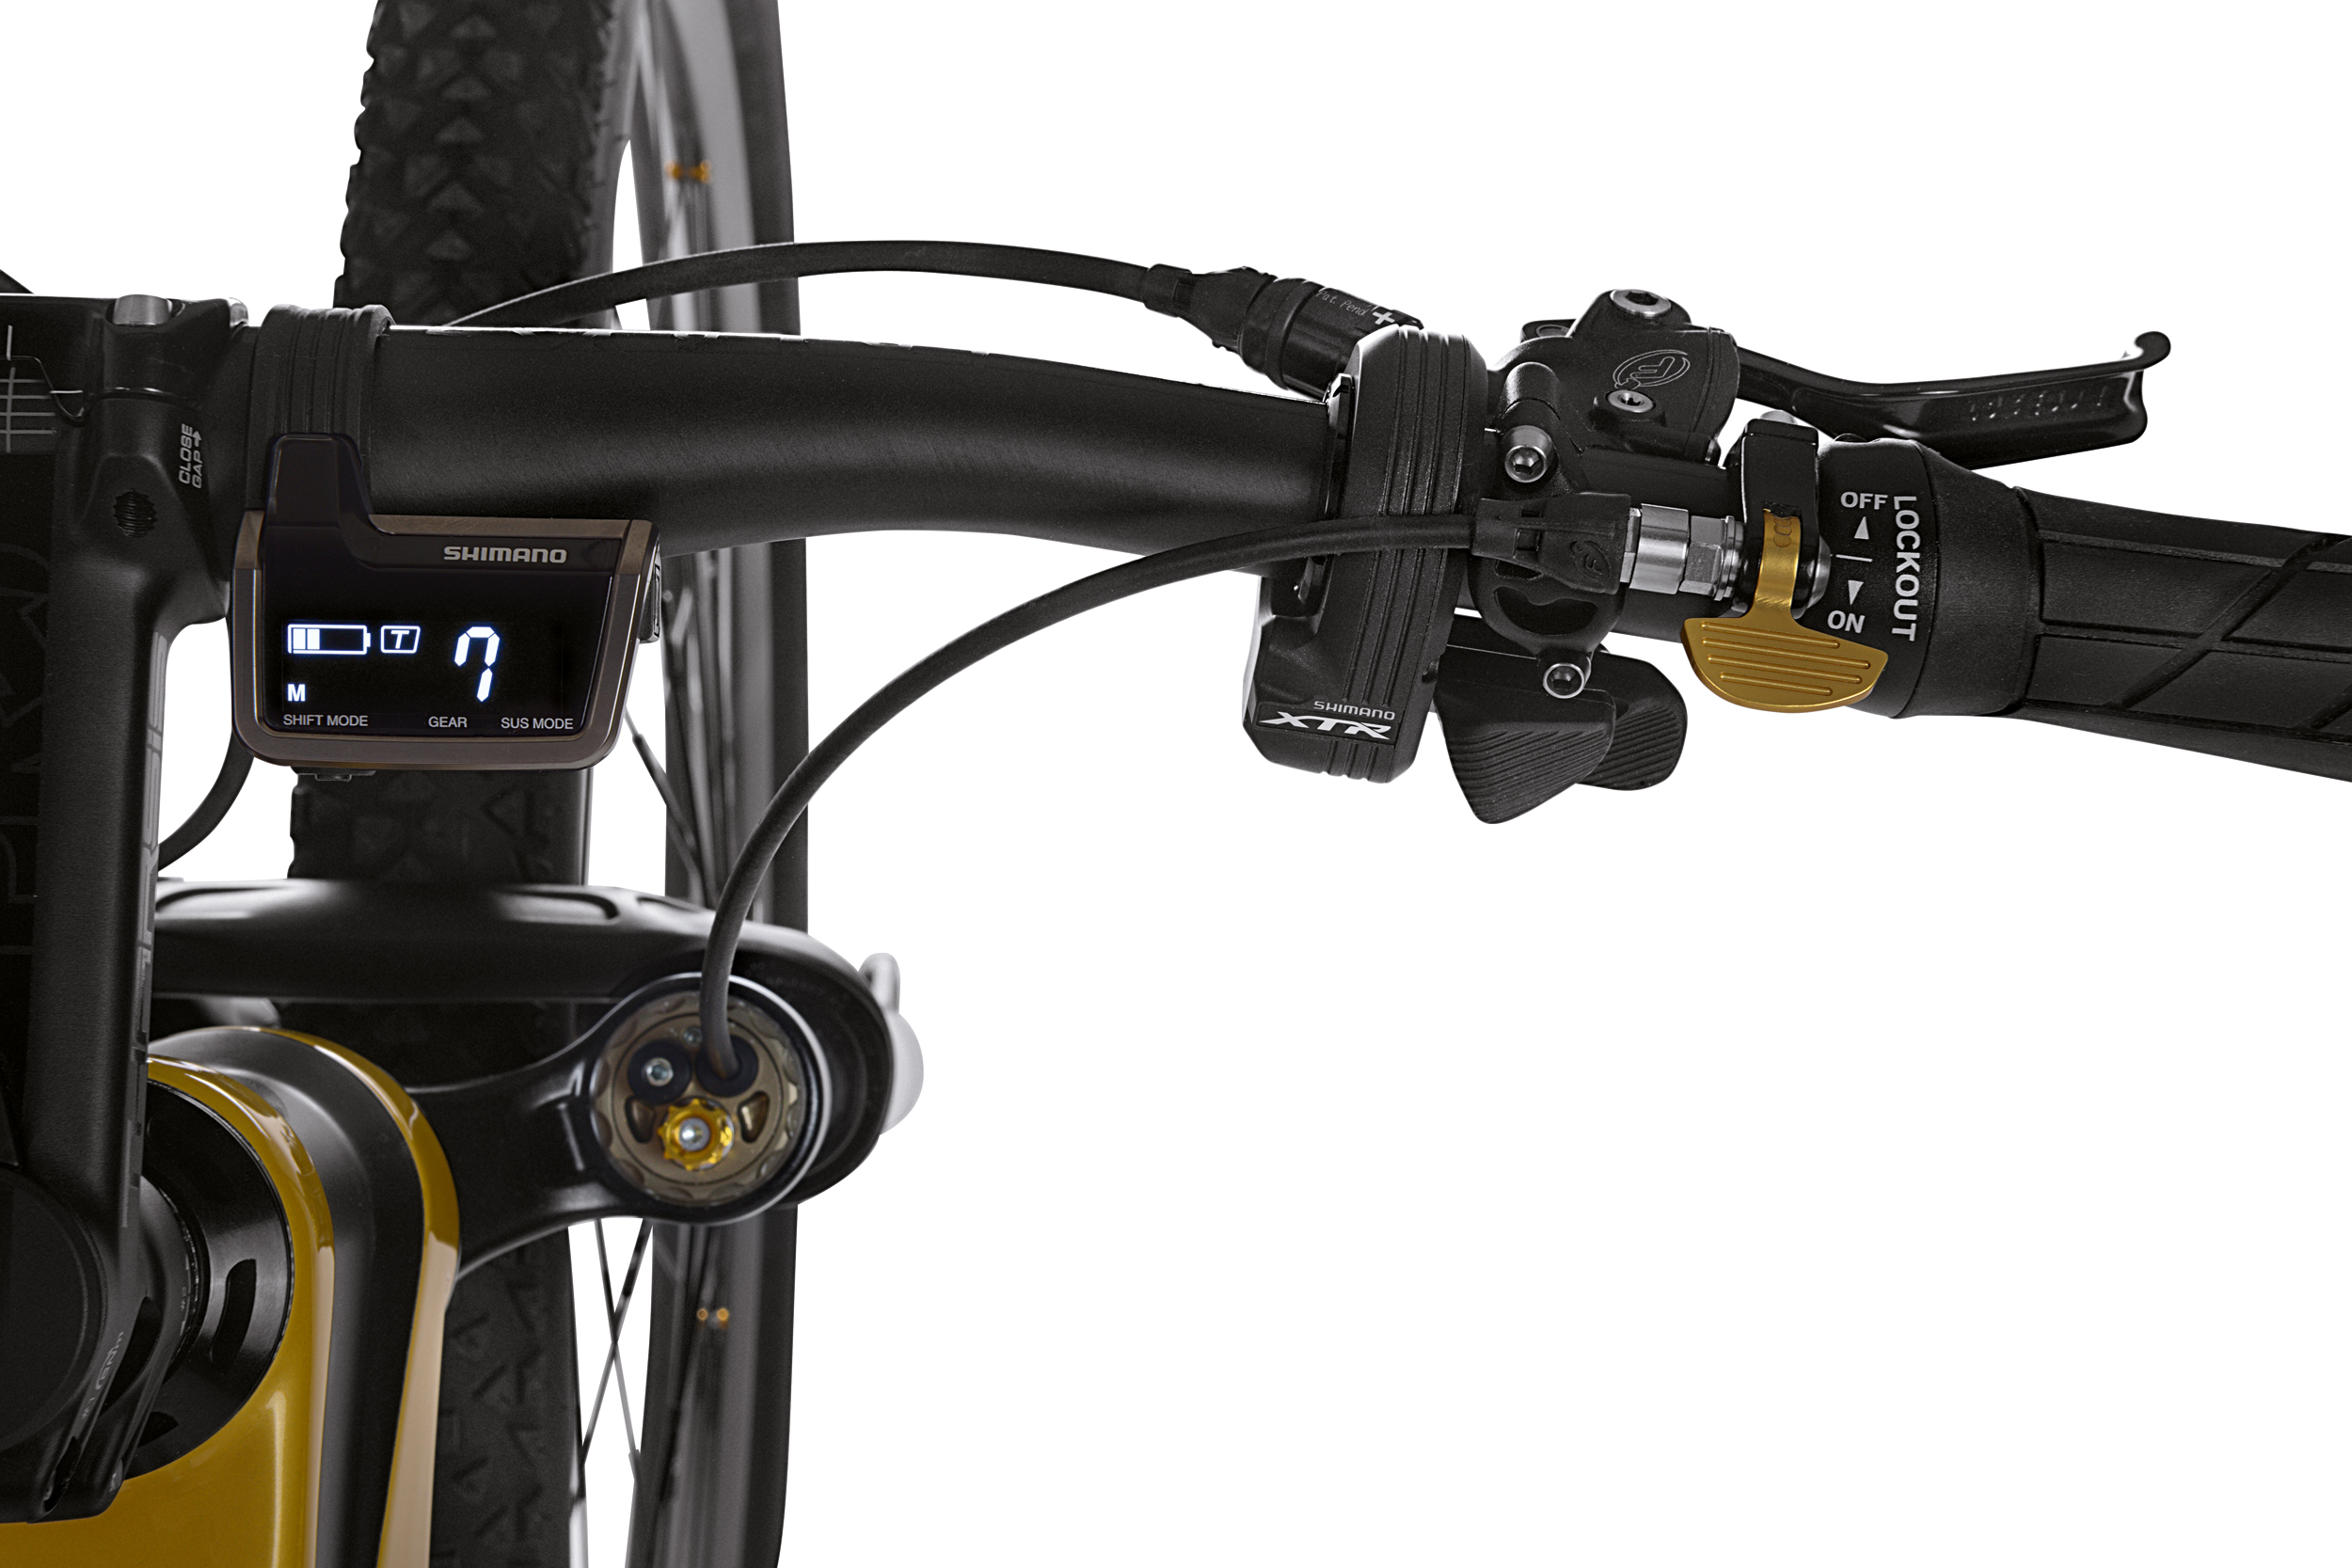 rotwild-gt-s-detail-07-di2-display